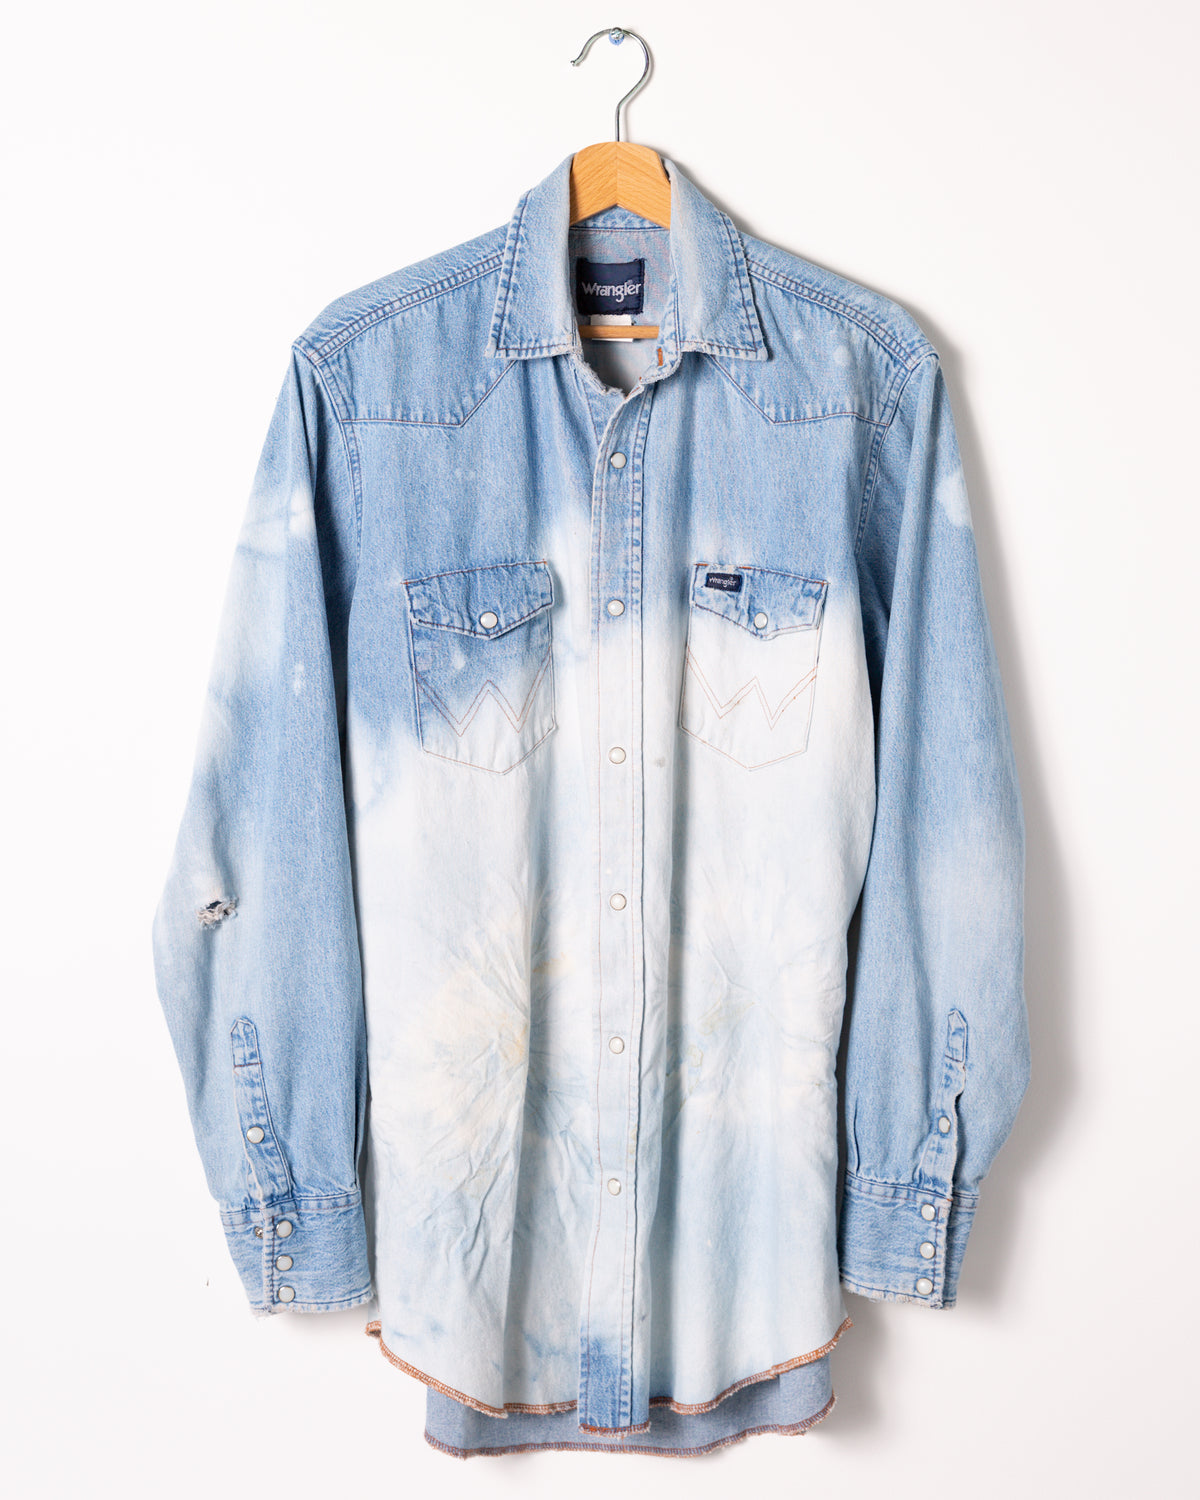 Vintage Denim Shirt - riverside tool & dye